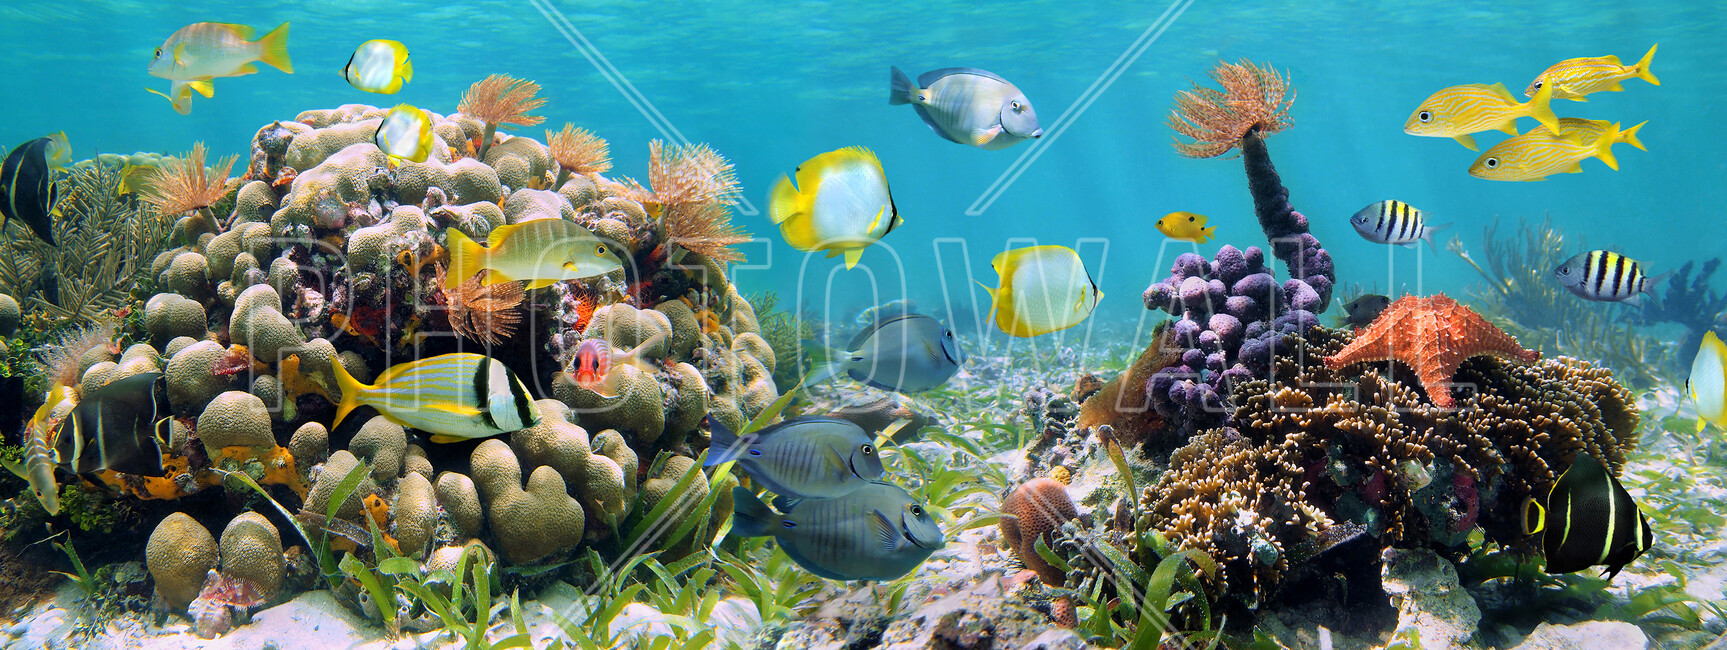 Panorama coral reef wall mural photo wallpaper photowall for Coral reef mural